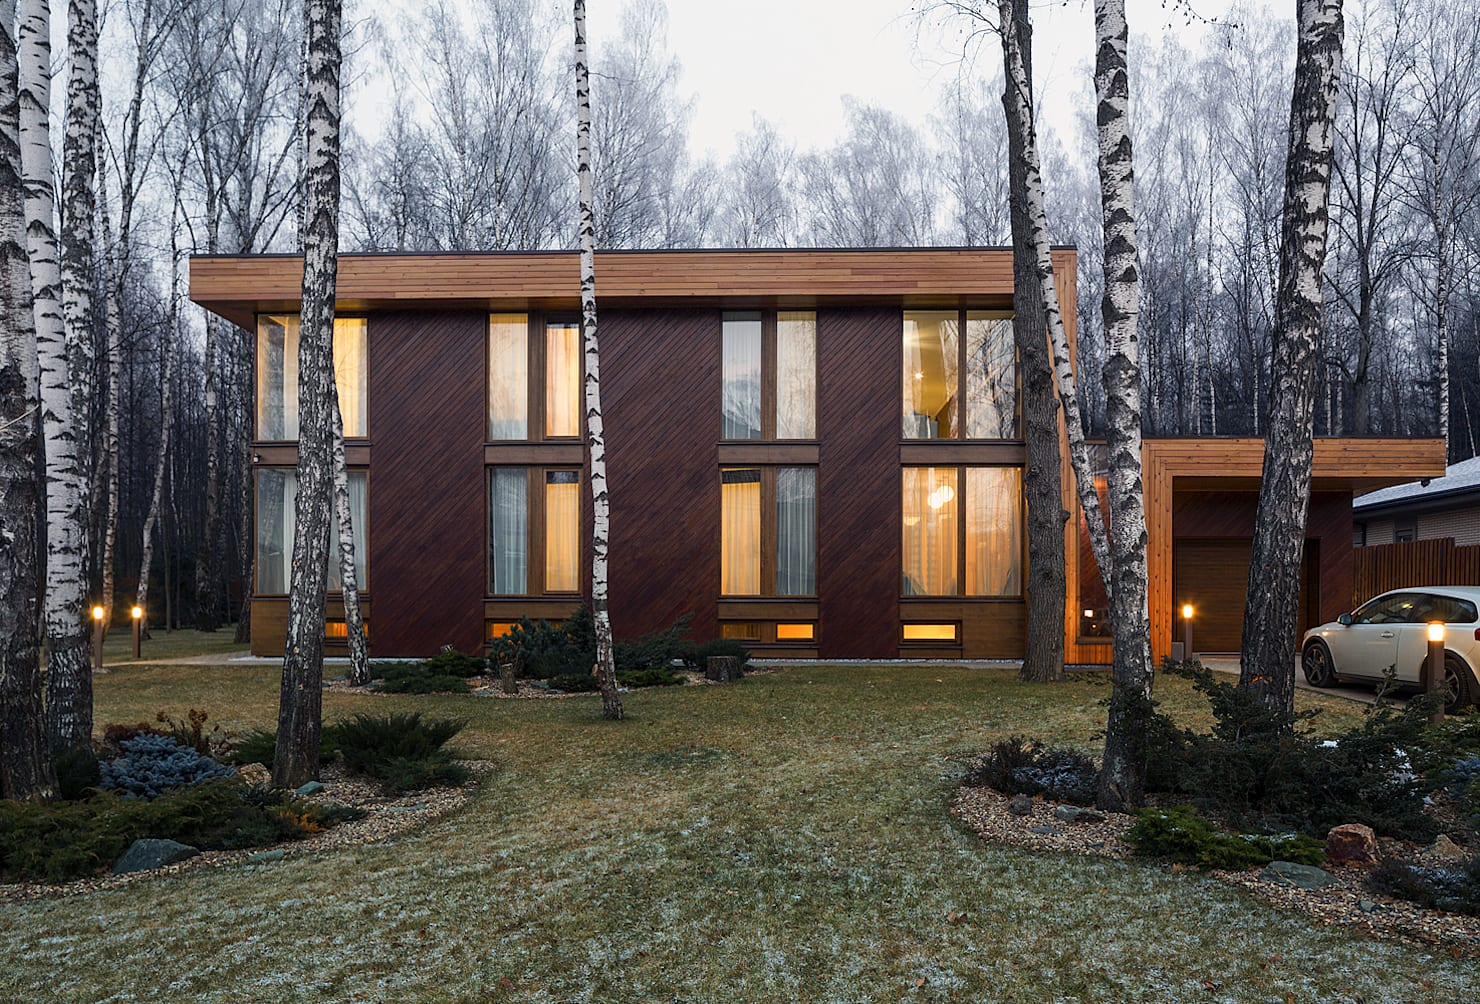 10 unforgettable wood-rich houses